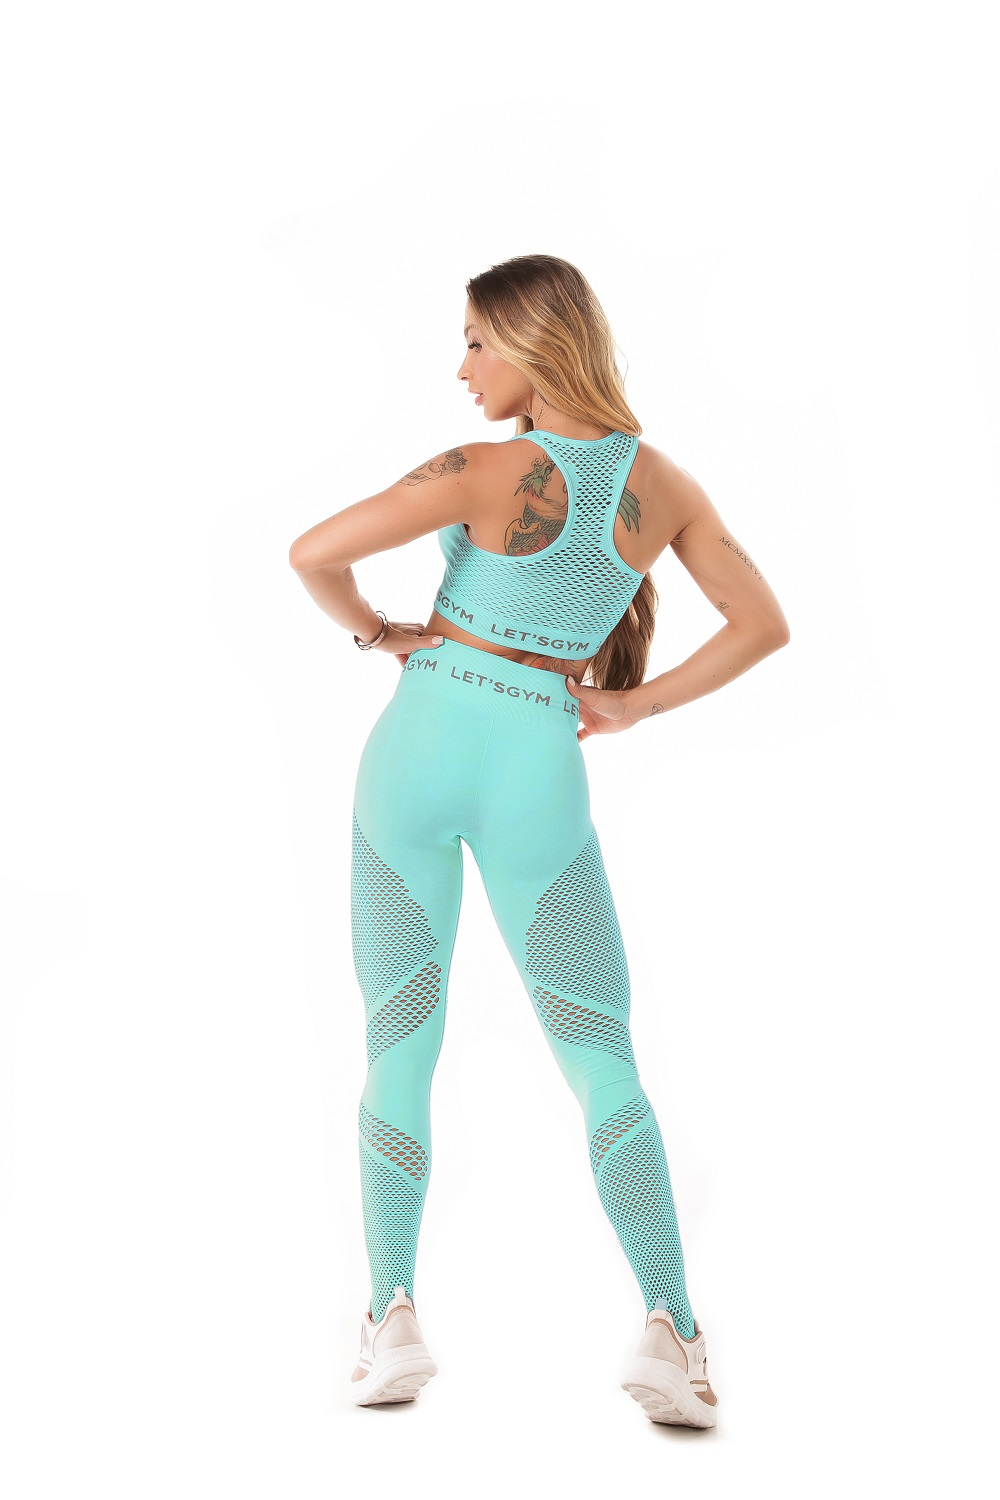 TOP SEAMLESS STYLISH SEM COSTURA TURQUESA LETSGYM